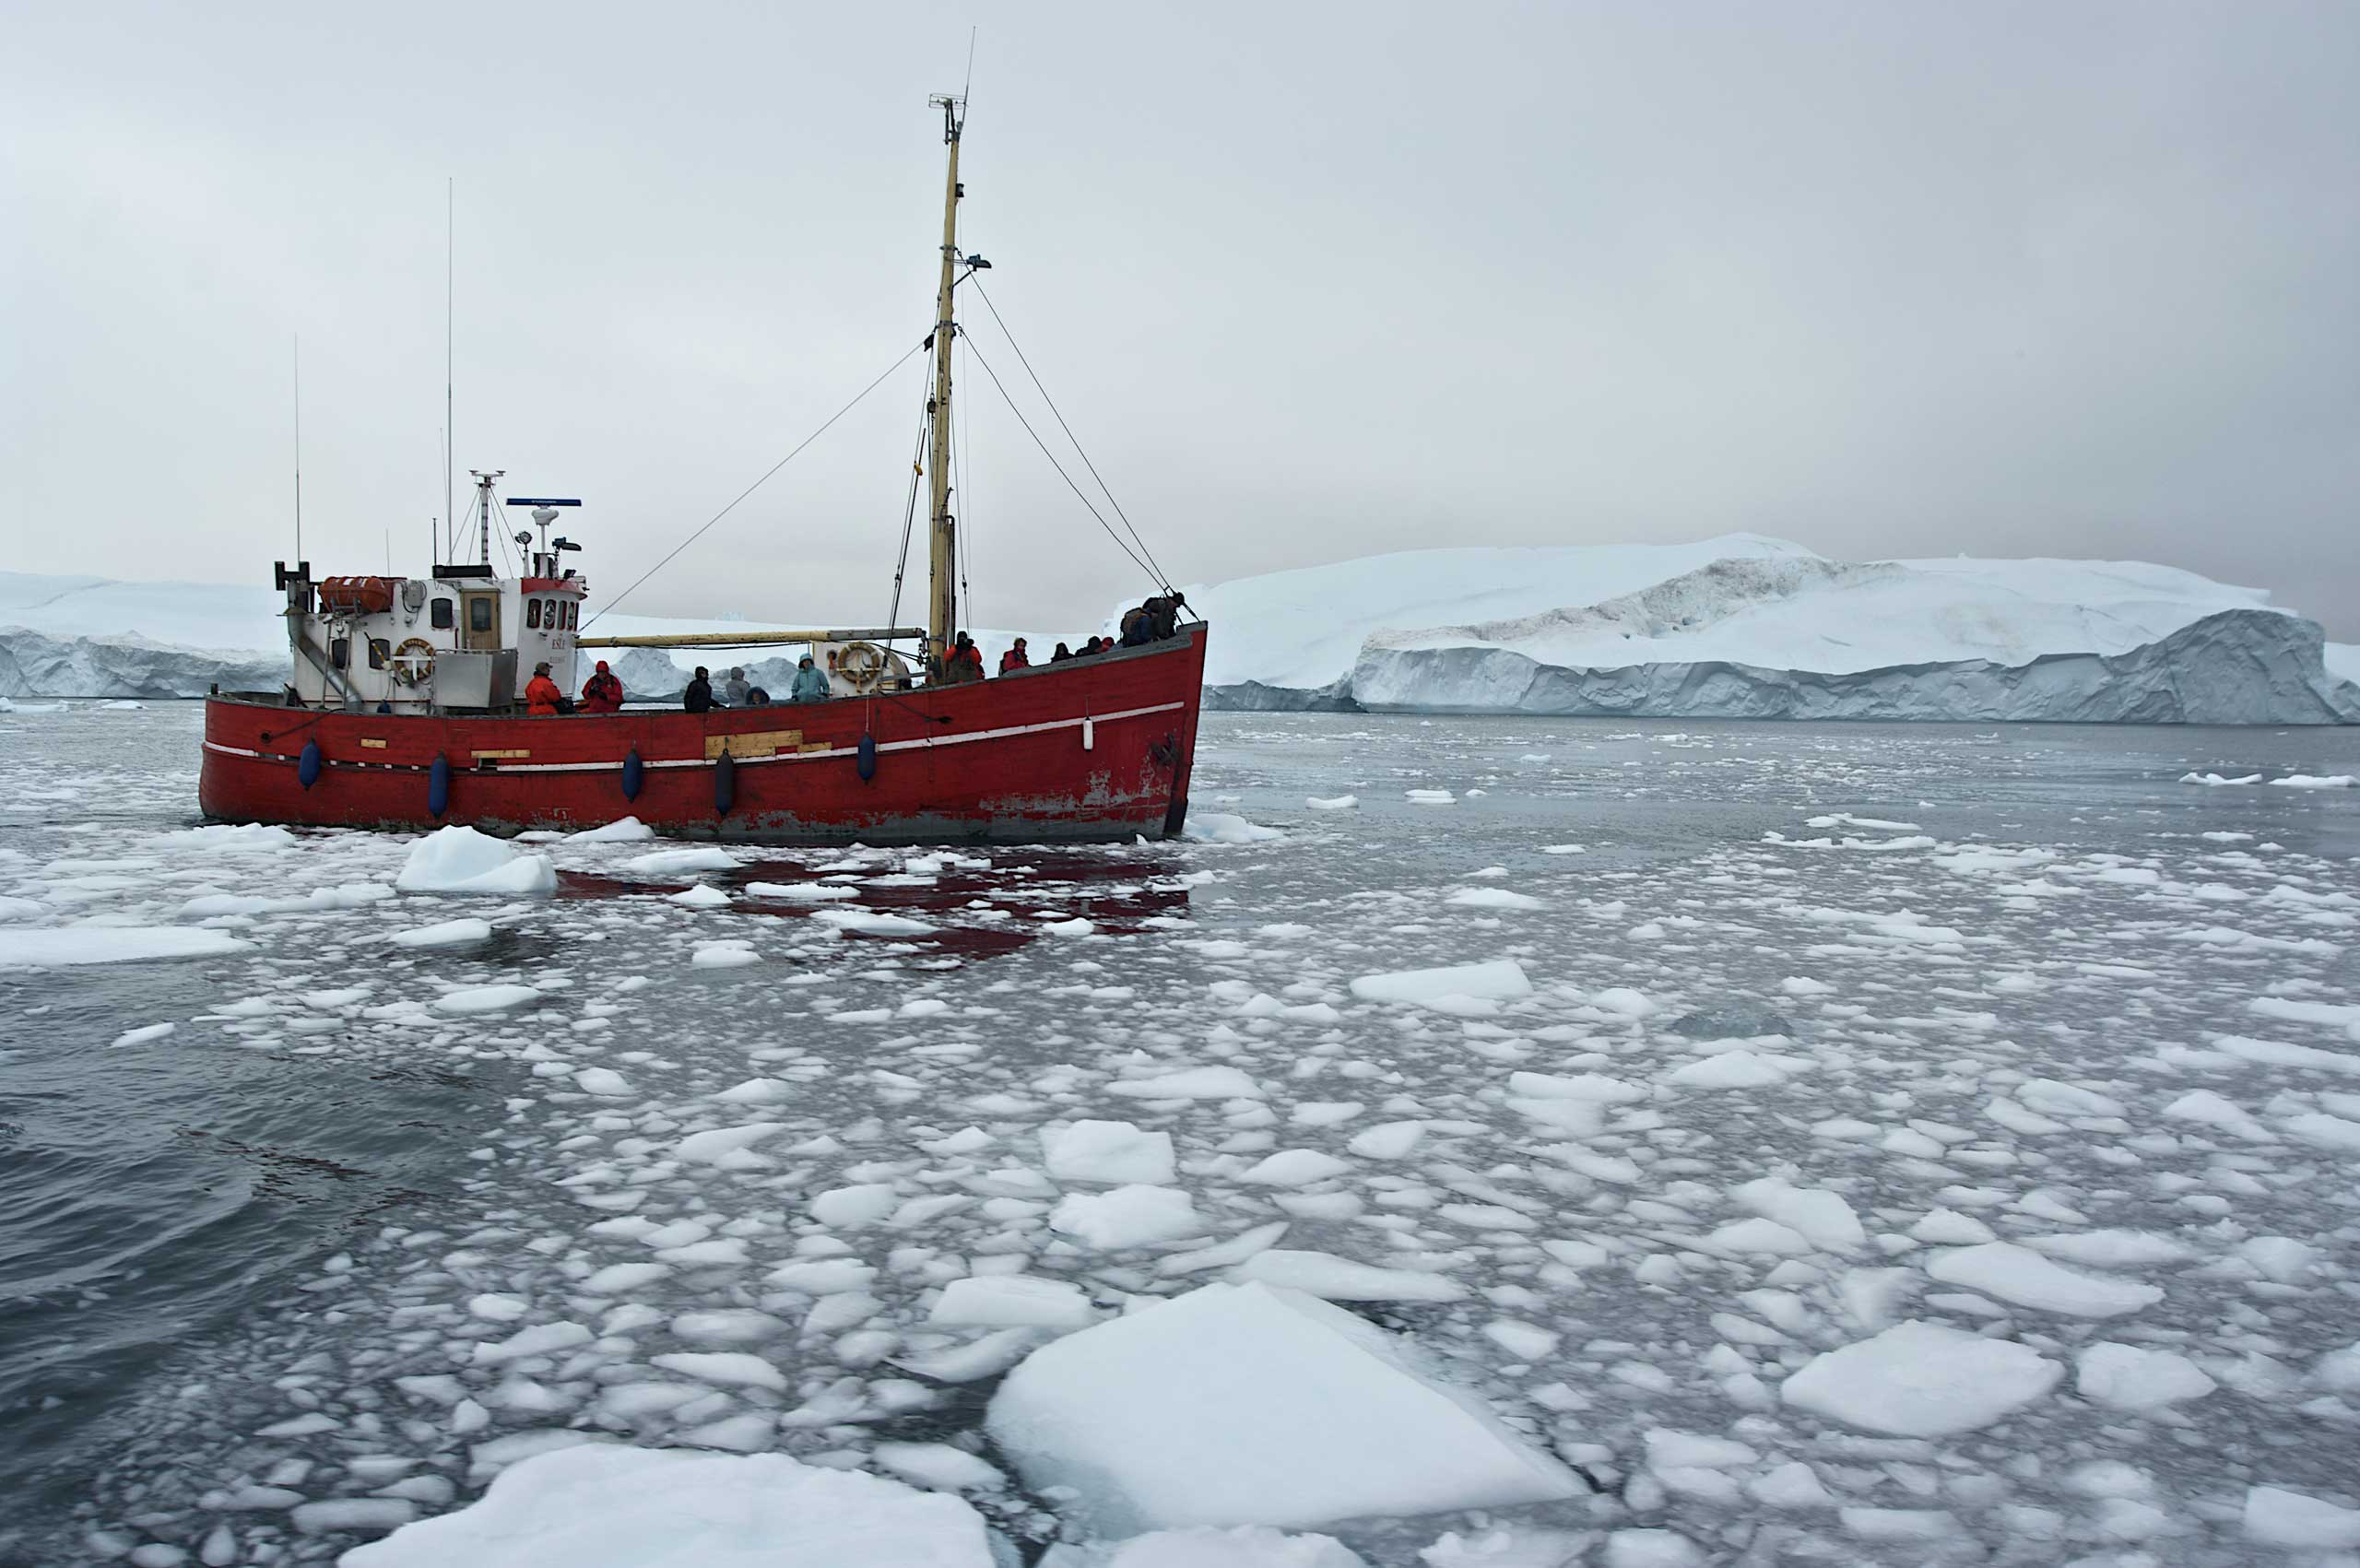 Ship among the icebergs that have broken off the Sermeq Kujalleq ice sheet, Ilulissat, Qaasuitsup, Greenland.